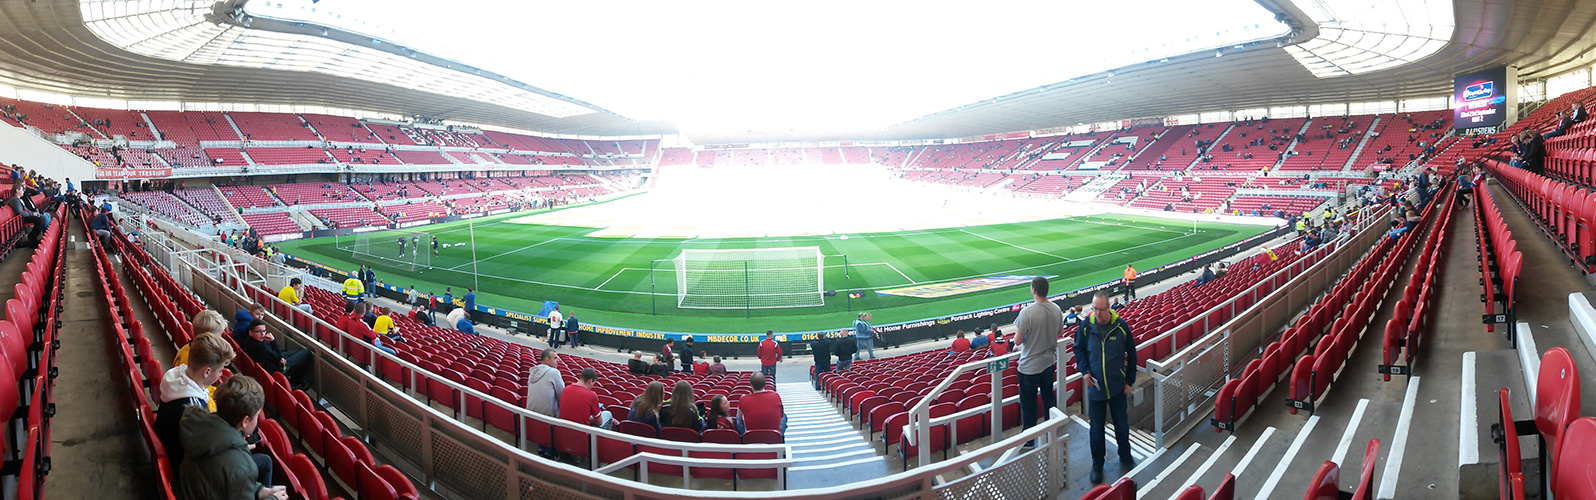 panoramic of the riverside middlesbrough